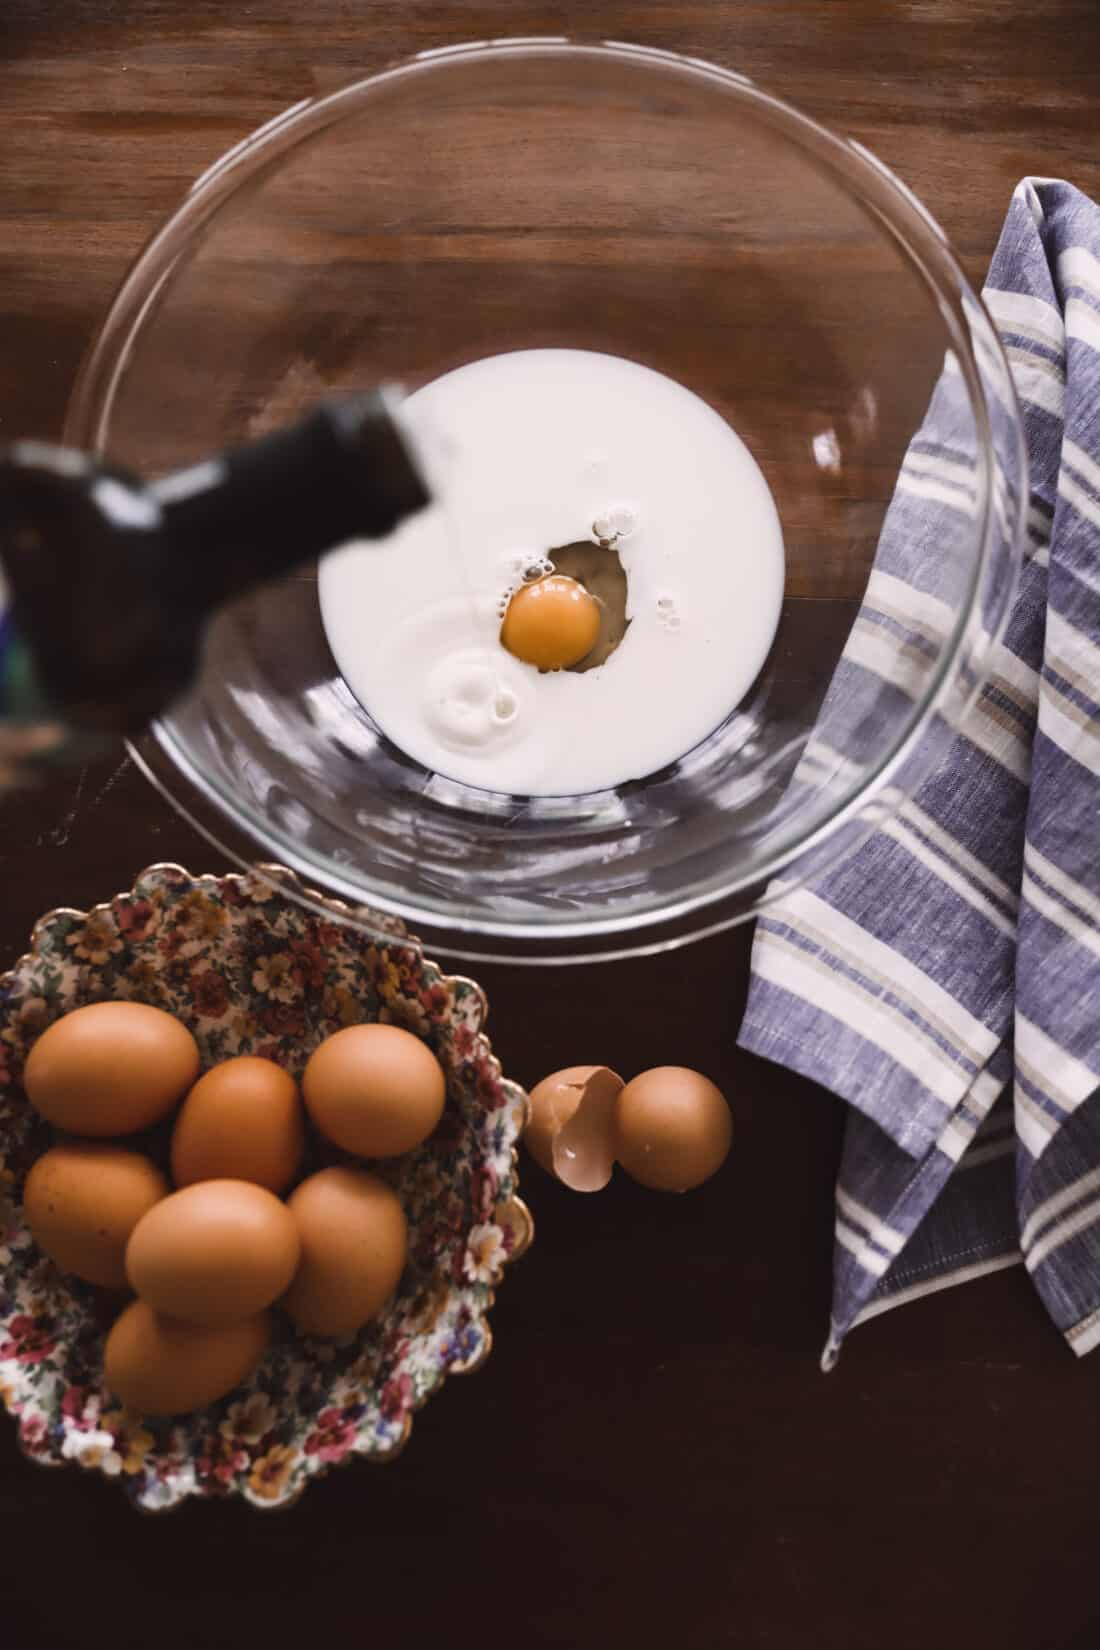 pancake ingredients on a wooden table with a floral china bowl holding eggs